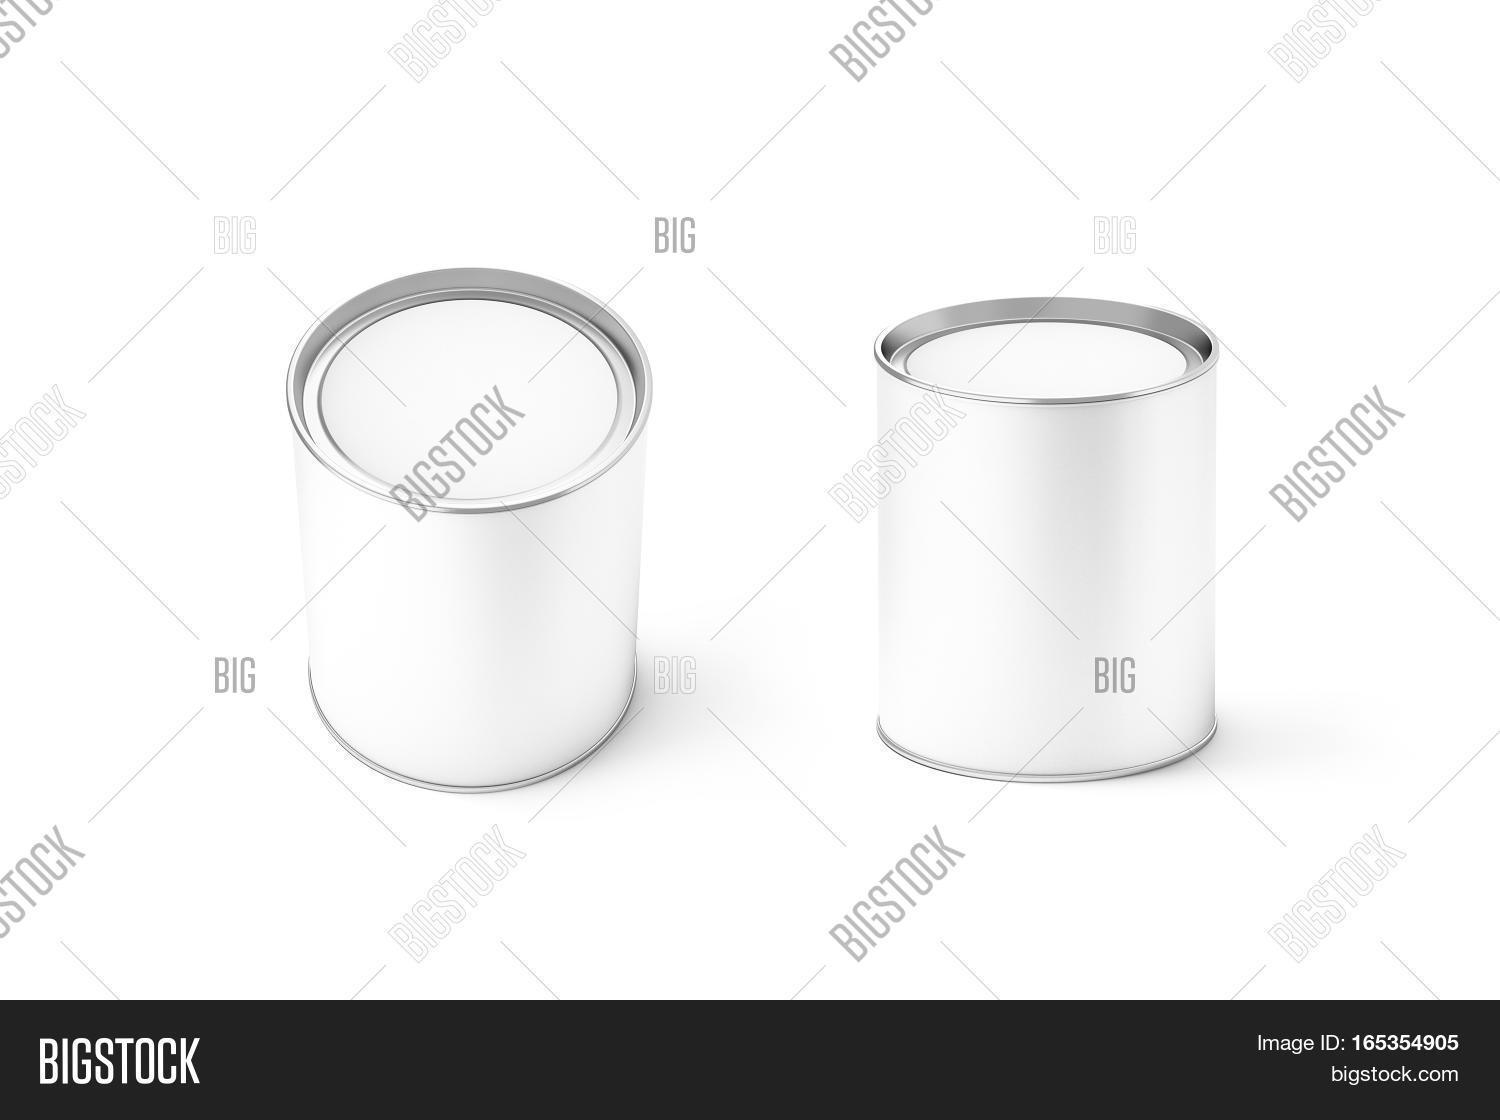 Blank White Round Can Image Photo Free Trial Bigstock